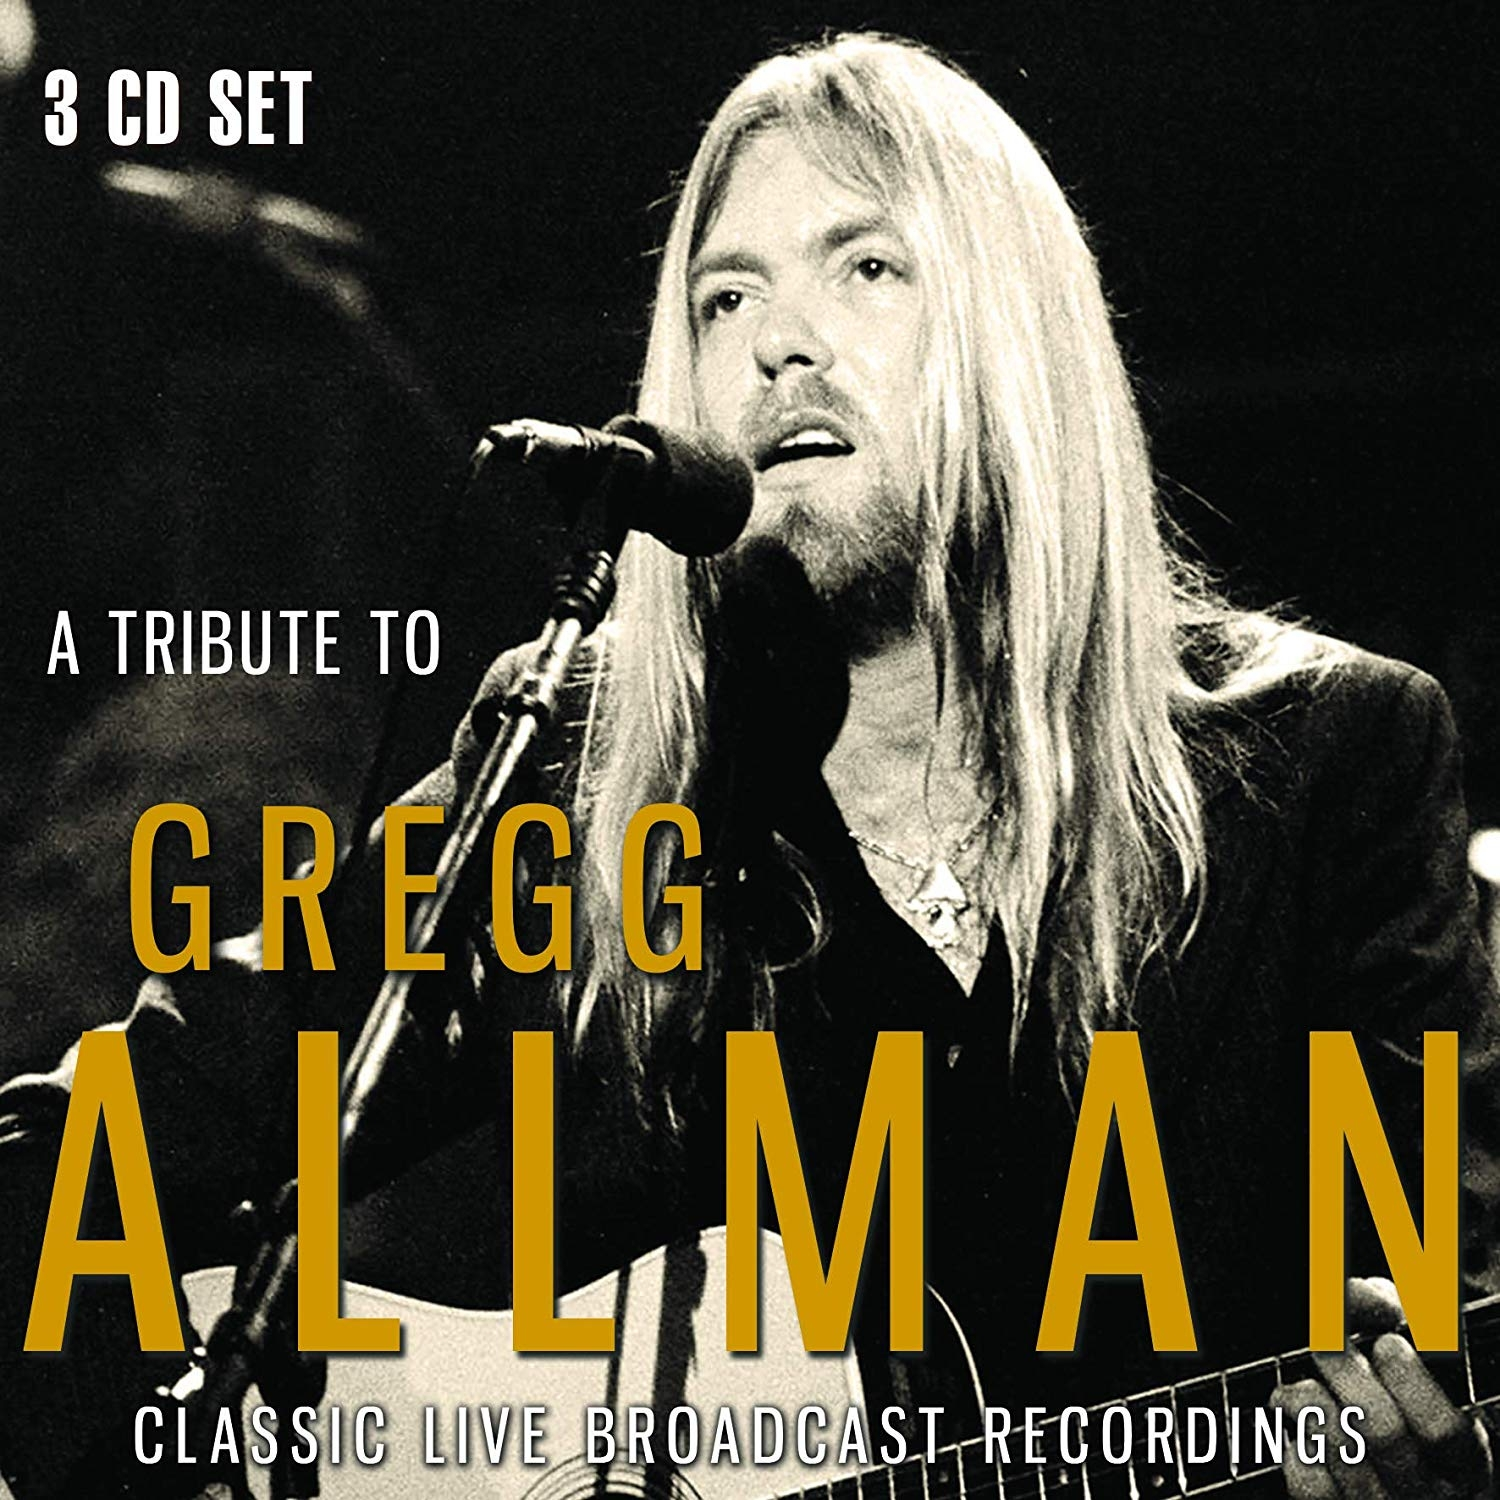 A Tribute To Gregg Allman Box Set, 3CD